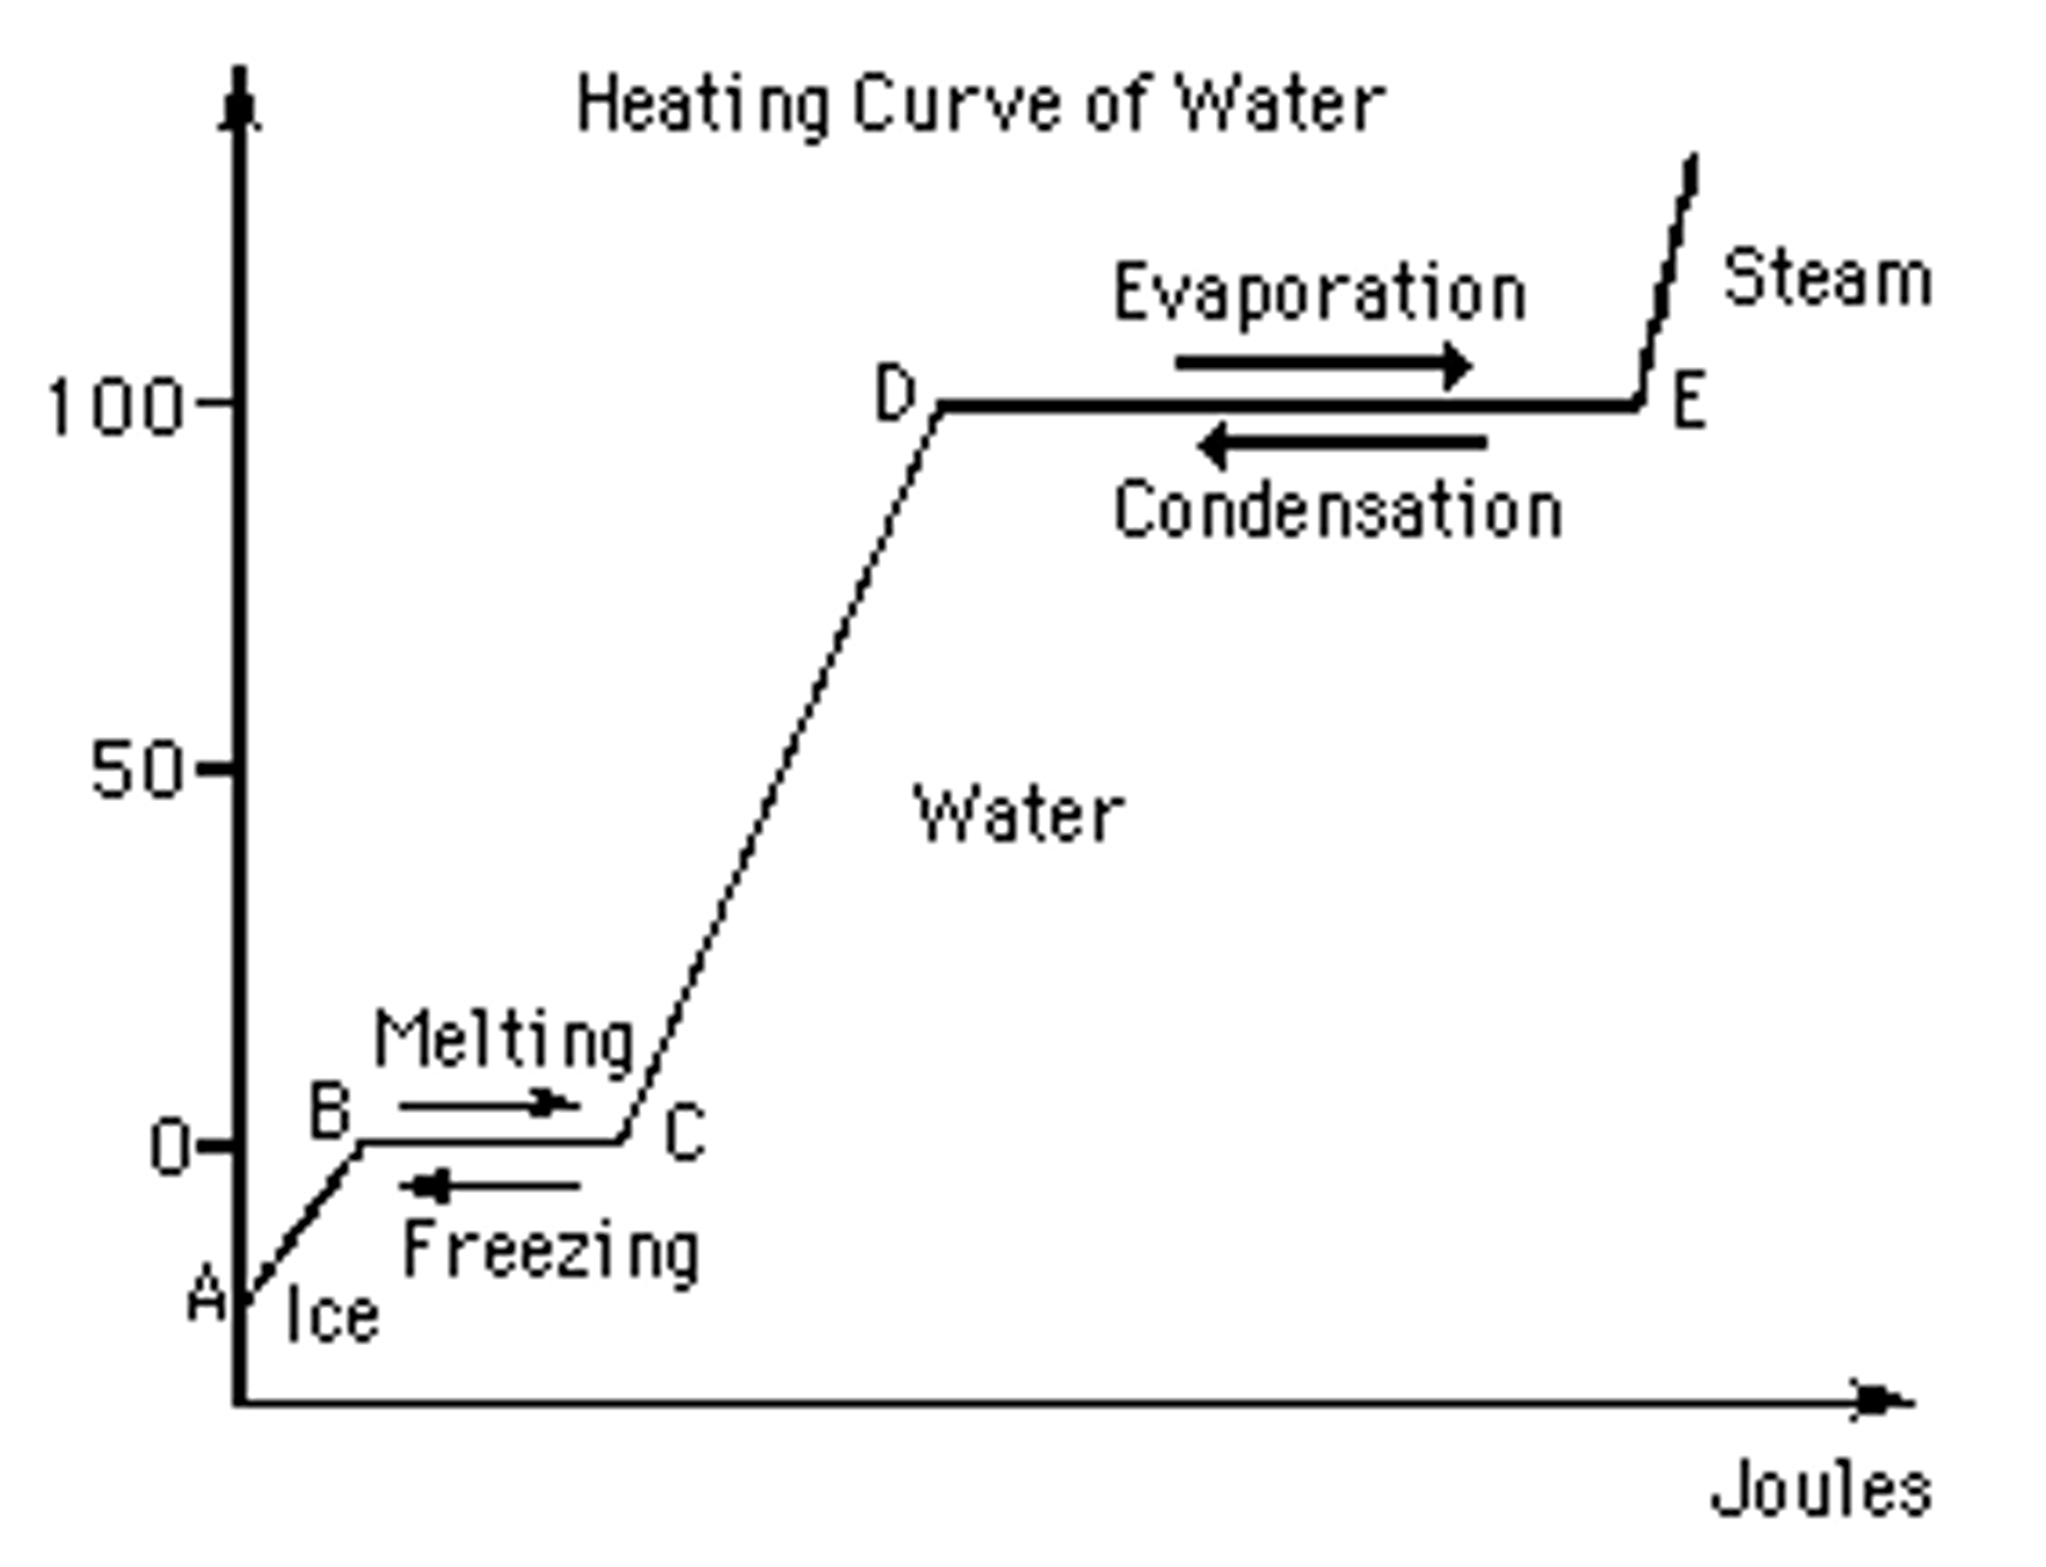 Heating Curve For Water Diagram Trusted Wiring Diagram